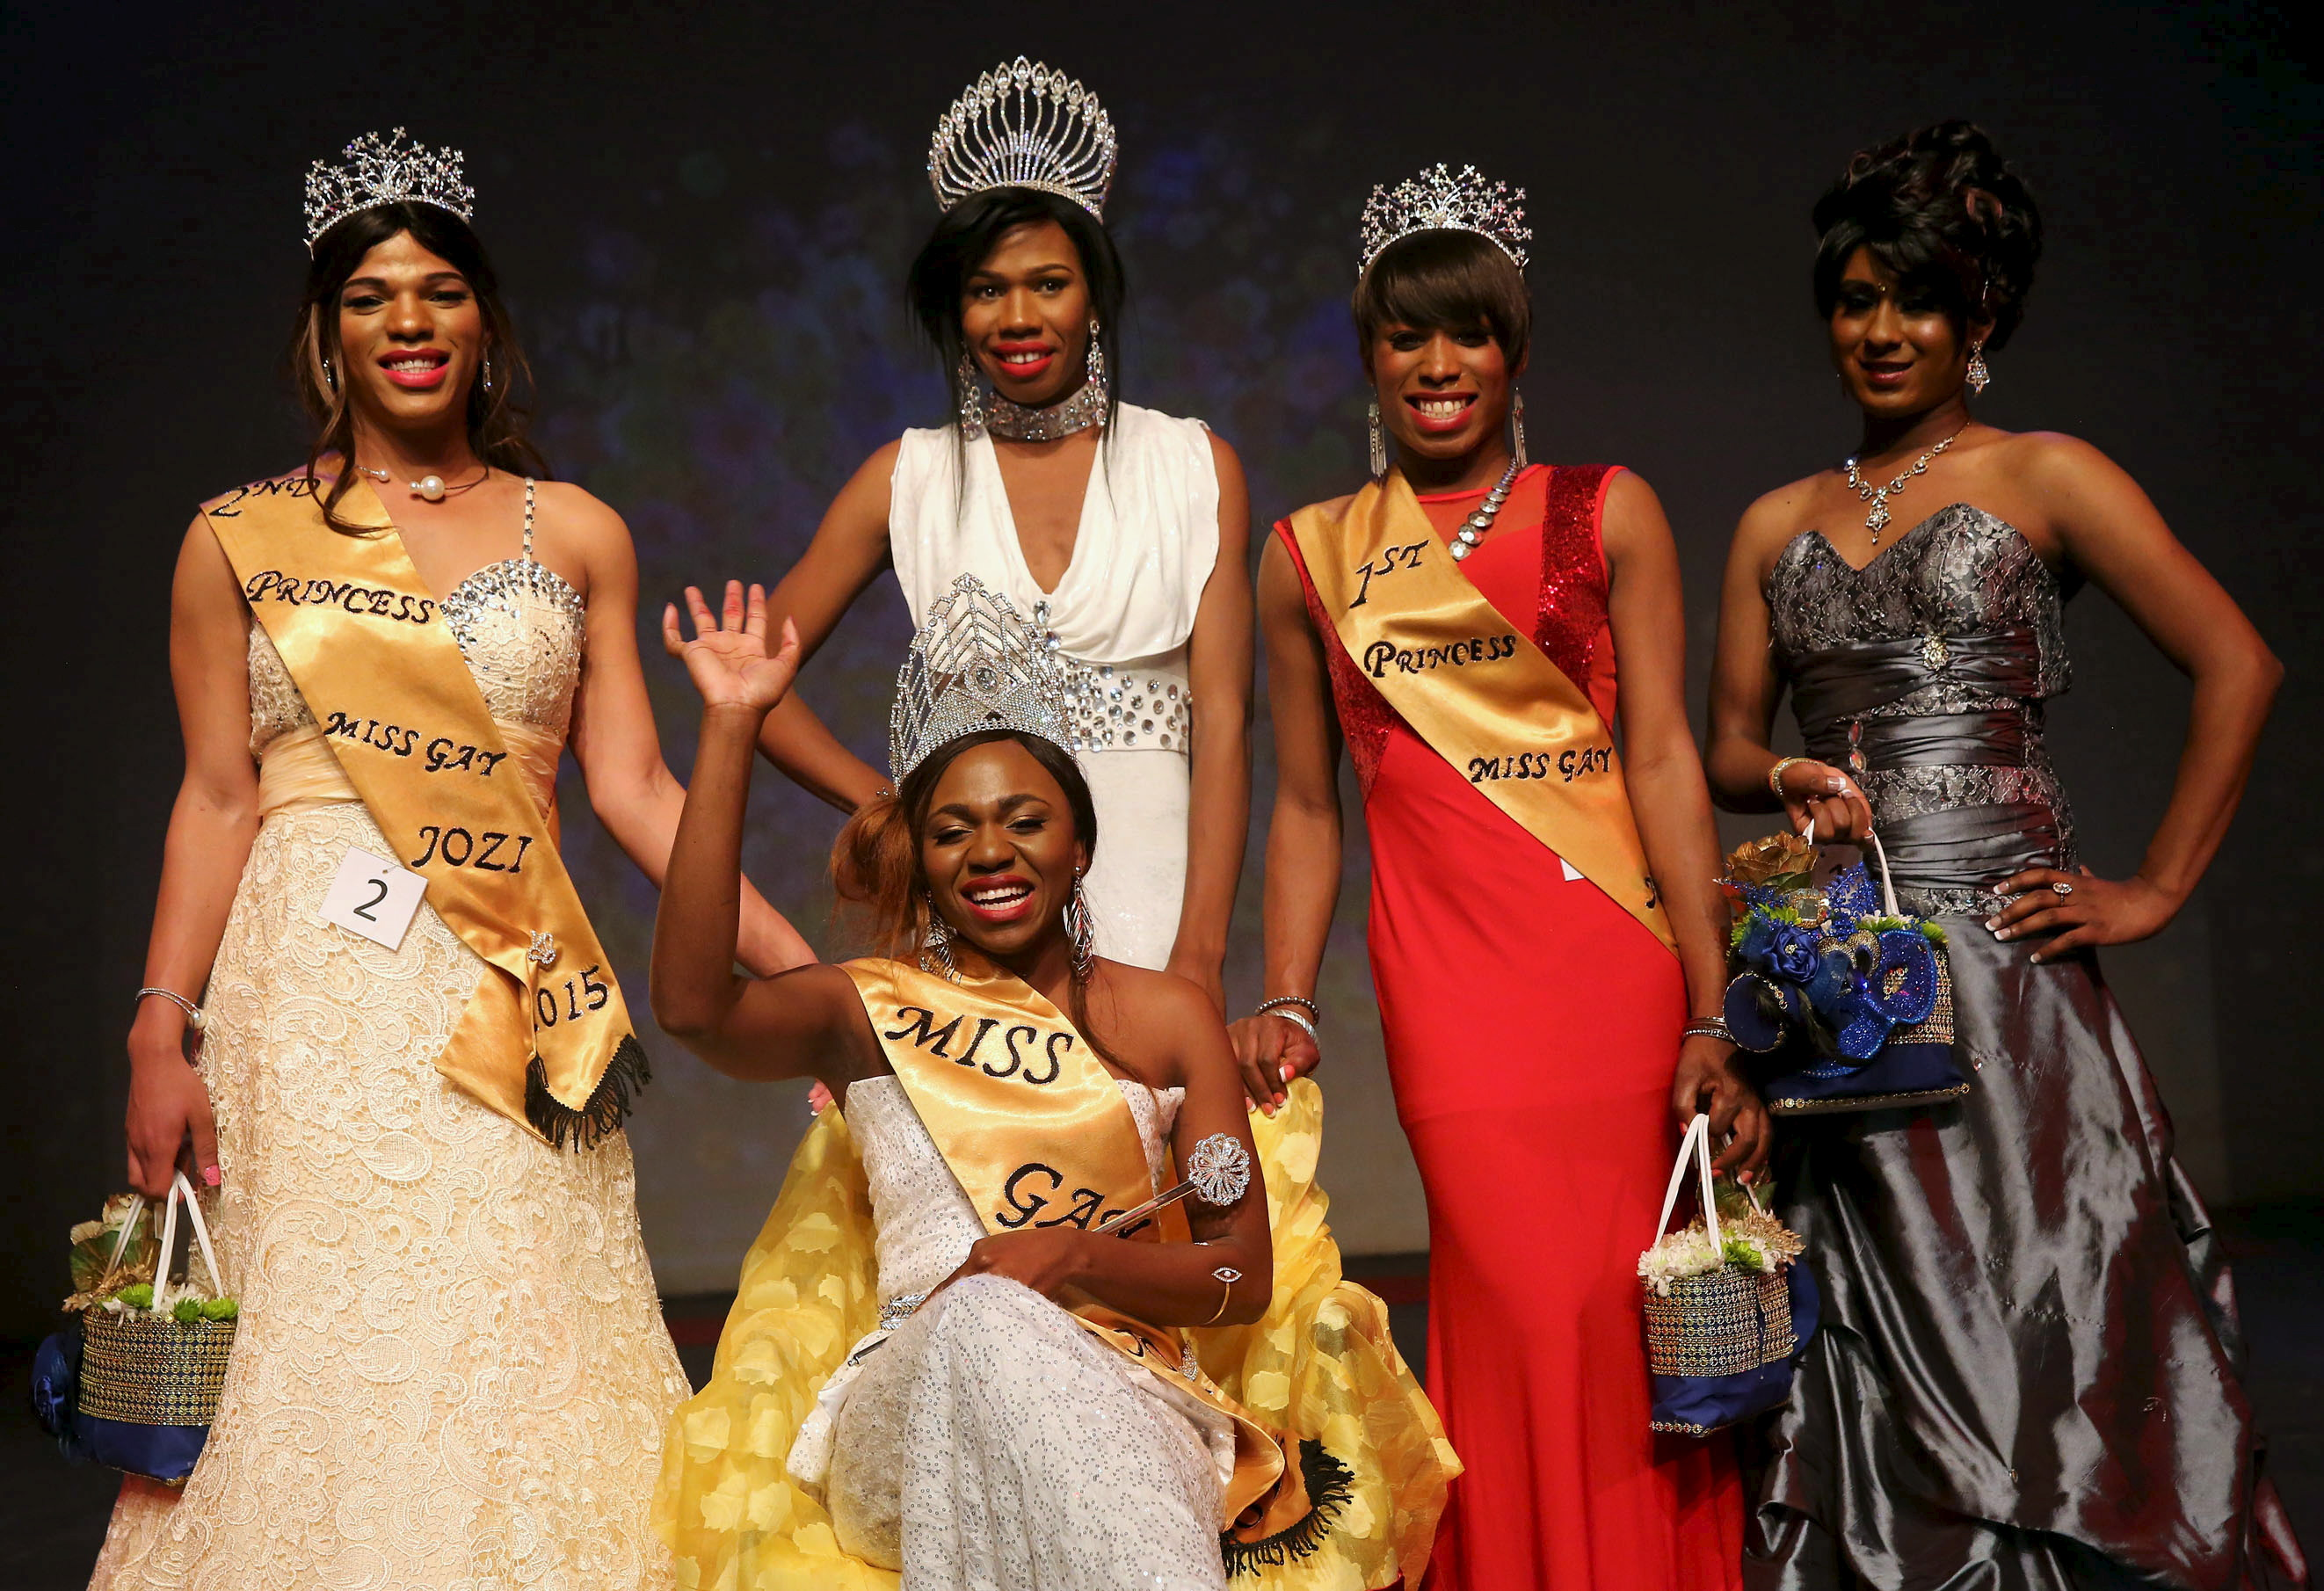 The philippines beauty pageant obsession